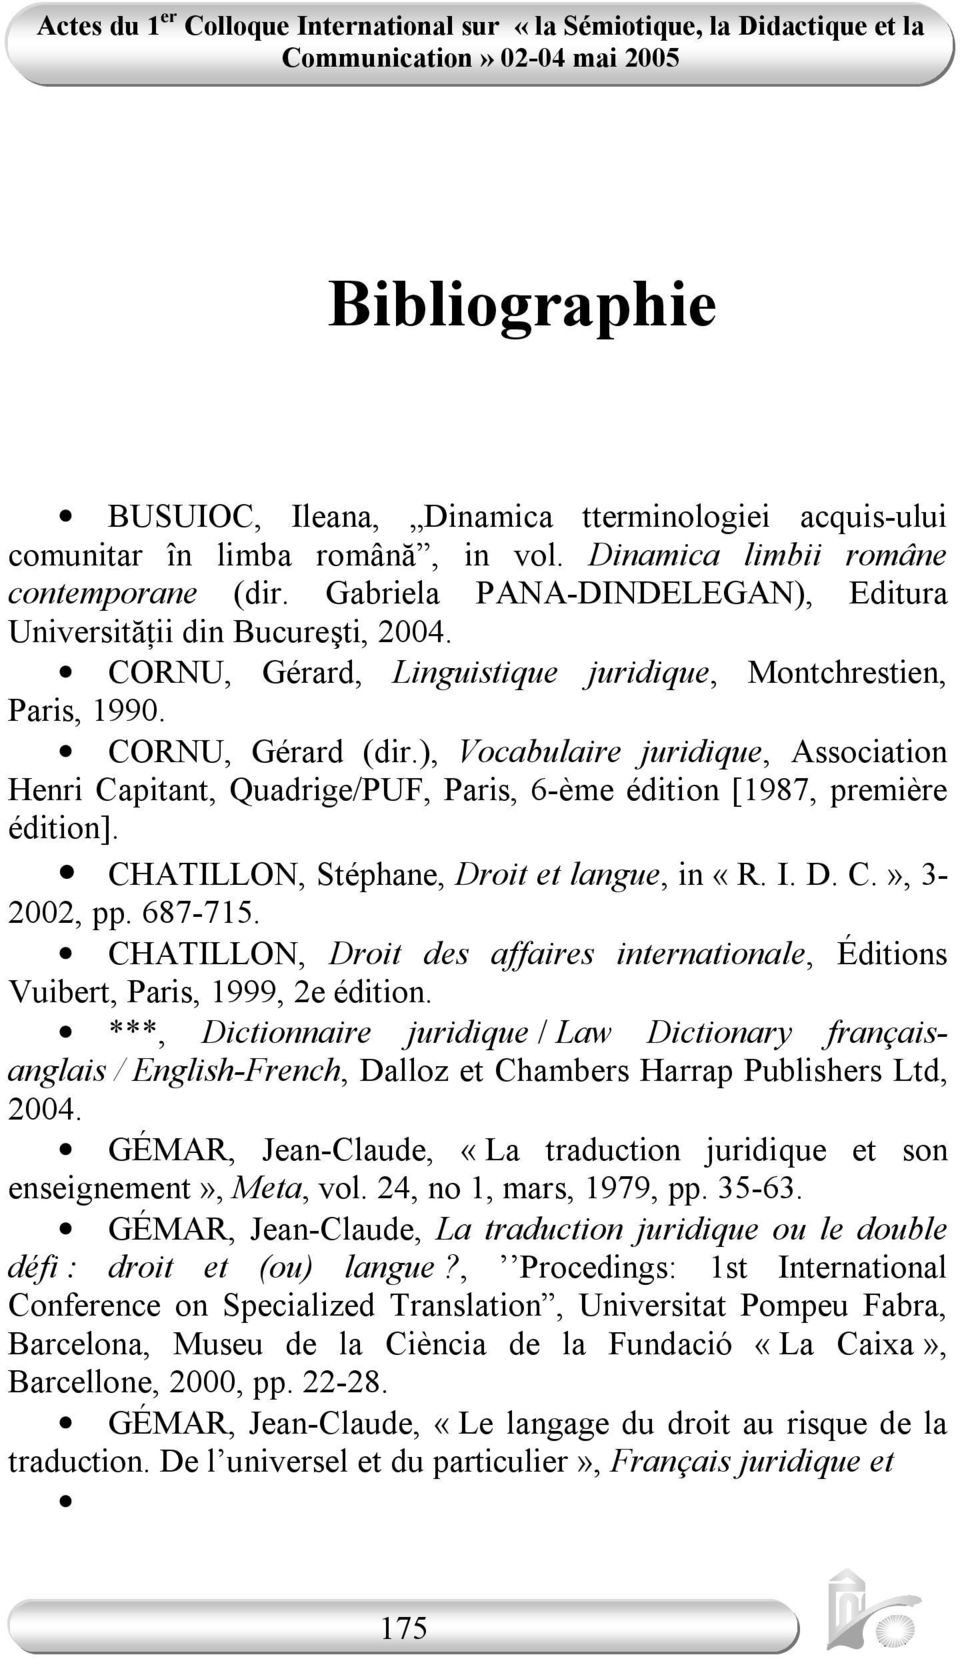 ), Vocabulaire juridique, Association Henri Capitant, Quadrige/PUF, Paris, 6-ème édition [1987, première édition]. CHATILLON, Stéphane, Droit et langue, in «R. I. D. C.», 3-2002, pp. 687-715.